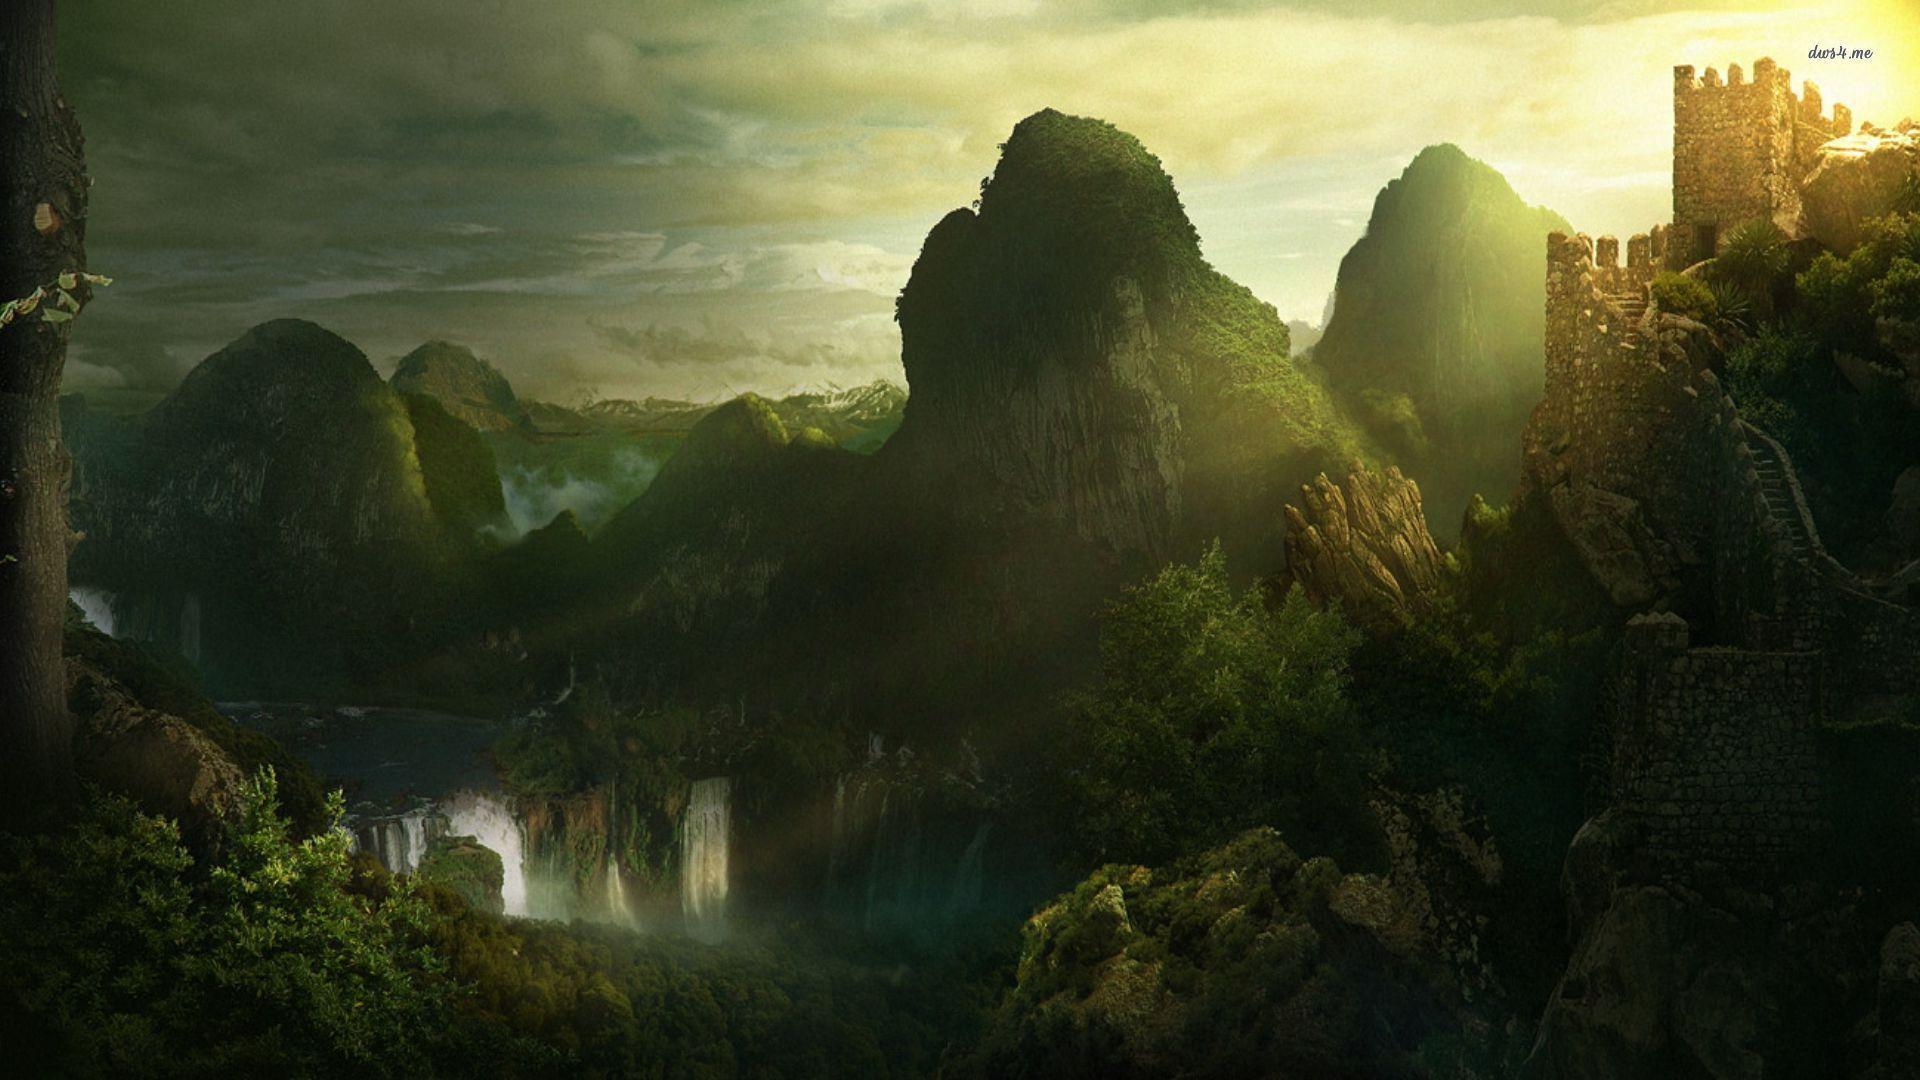 wallpapersbreathtaking views of - photo #18